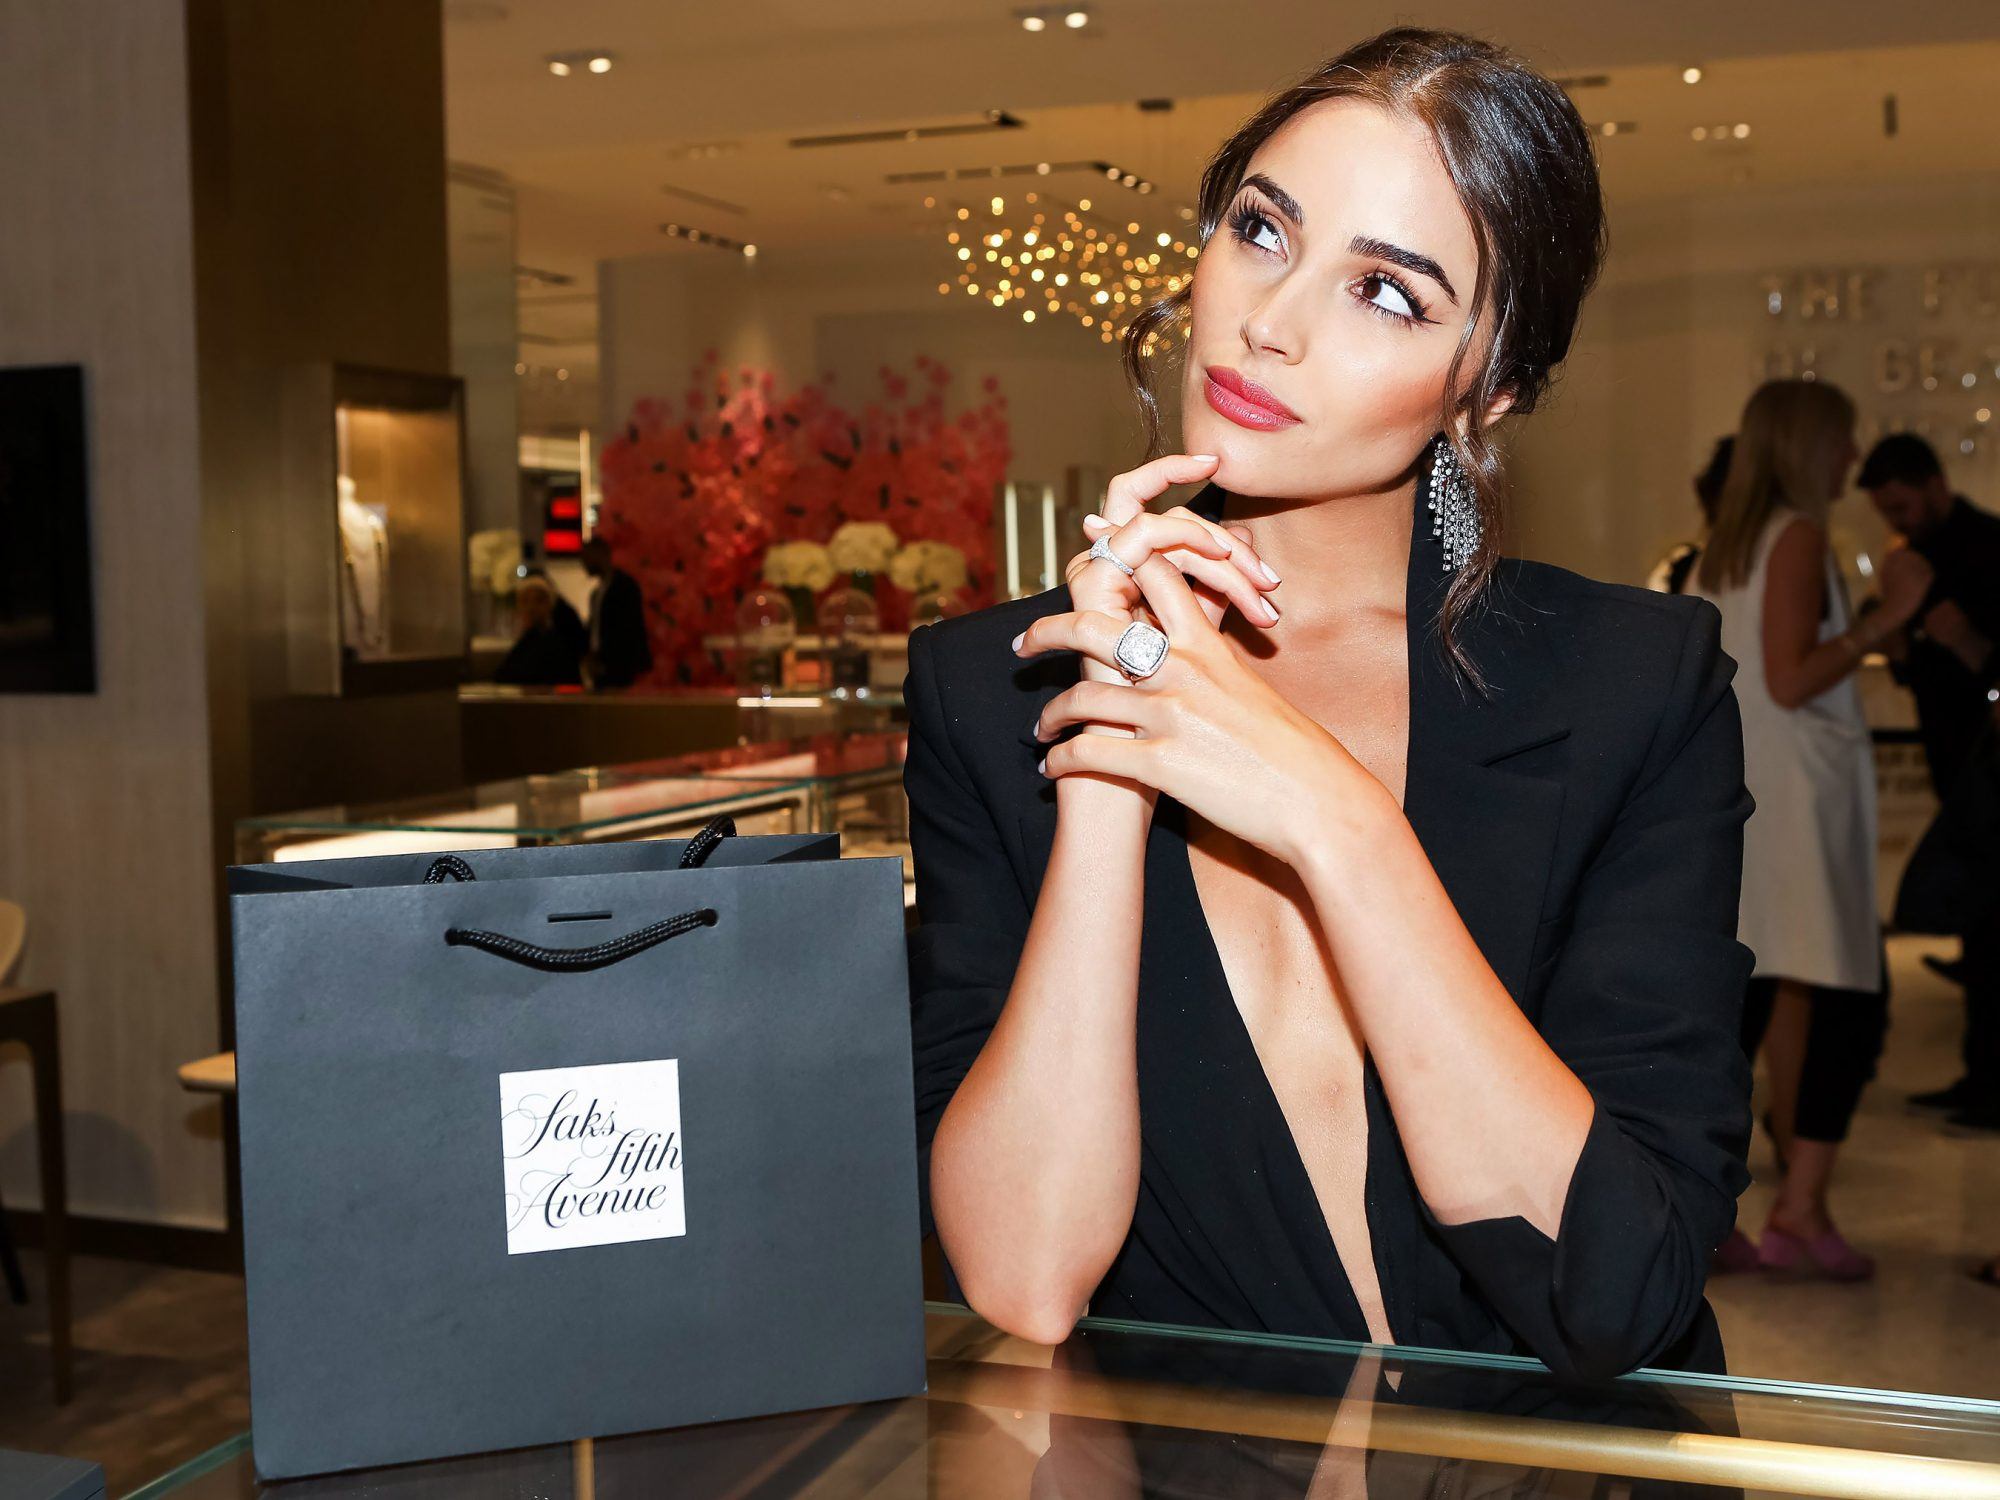 Saks Fifth Avenue x Town and Country Magazine party, New York, USA - 05 Jun 2018